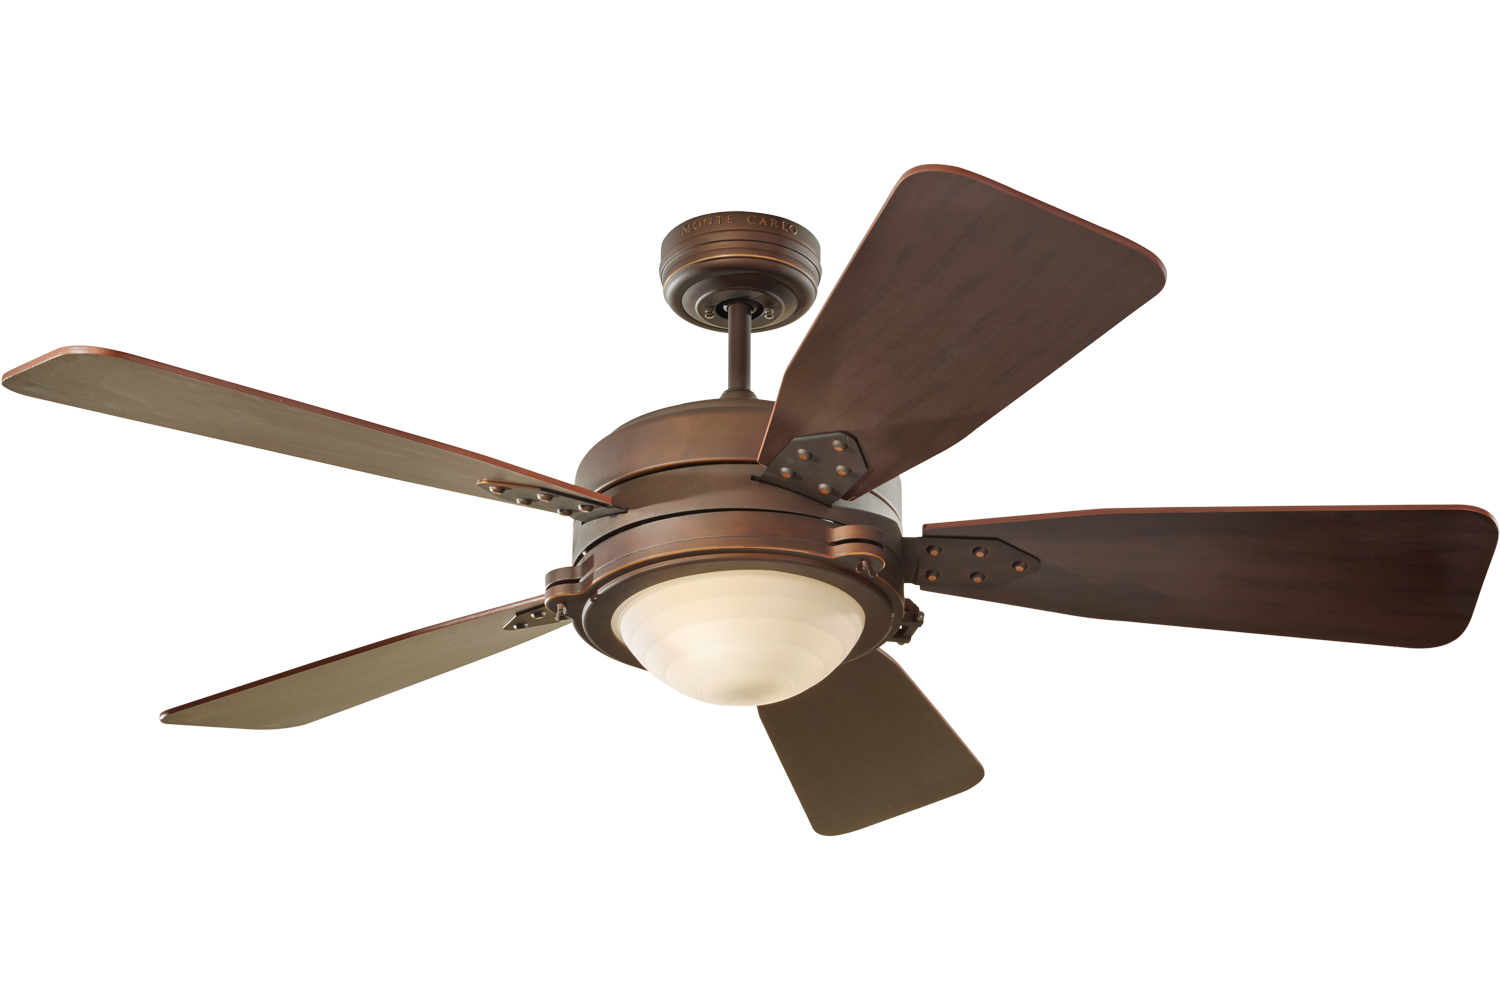 Vintage industrial ceiling fan with light by monte carlo 5vir52rbd - Industrial style ceiling fan with light ...